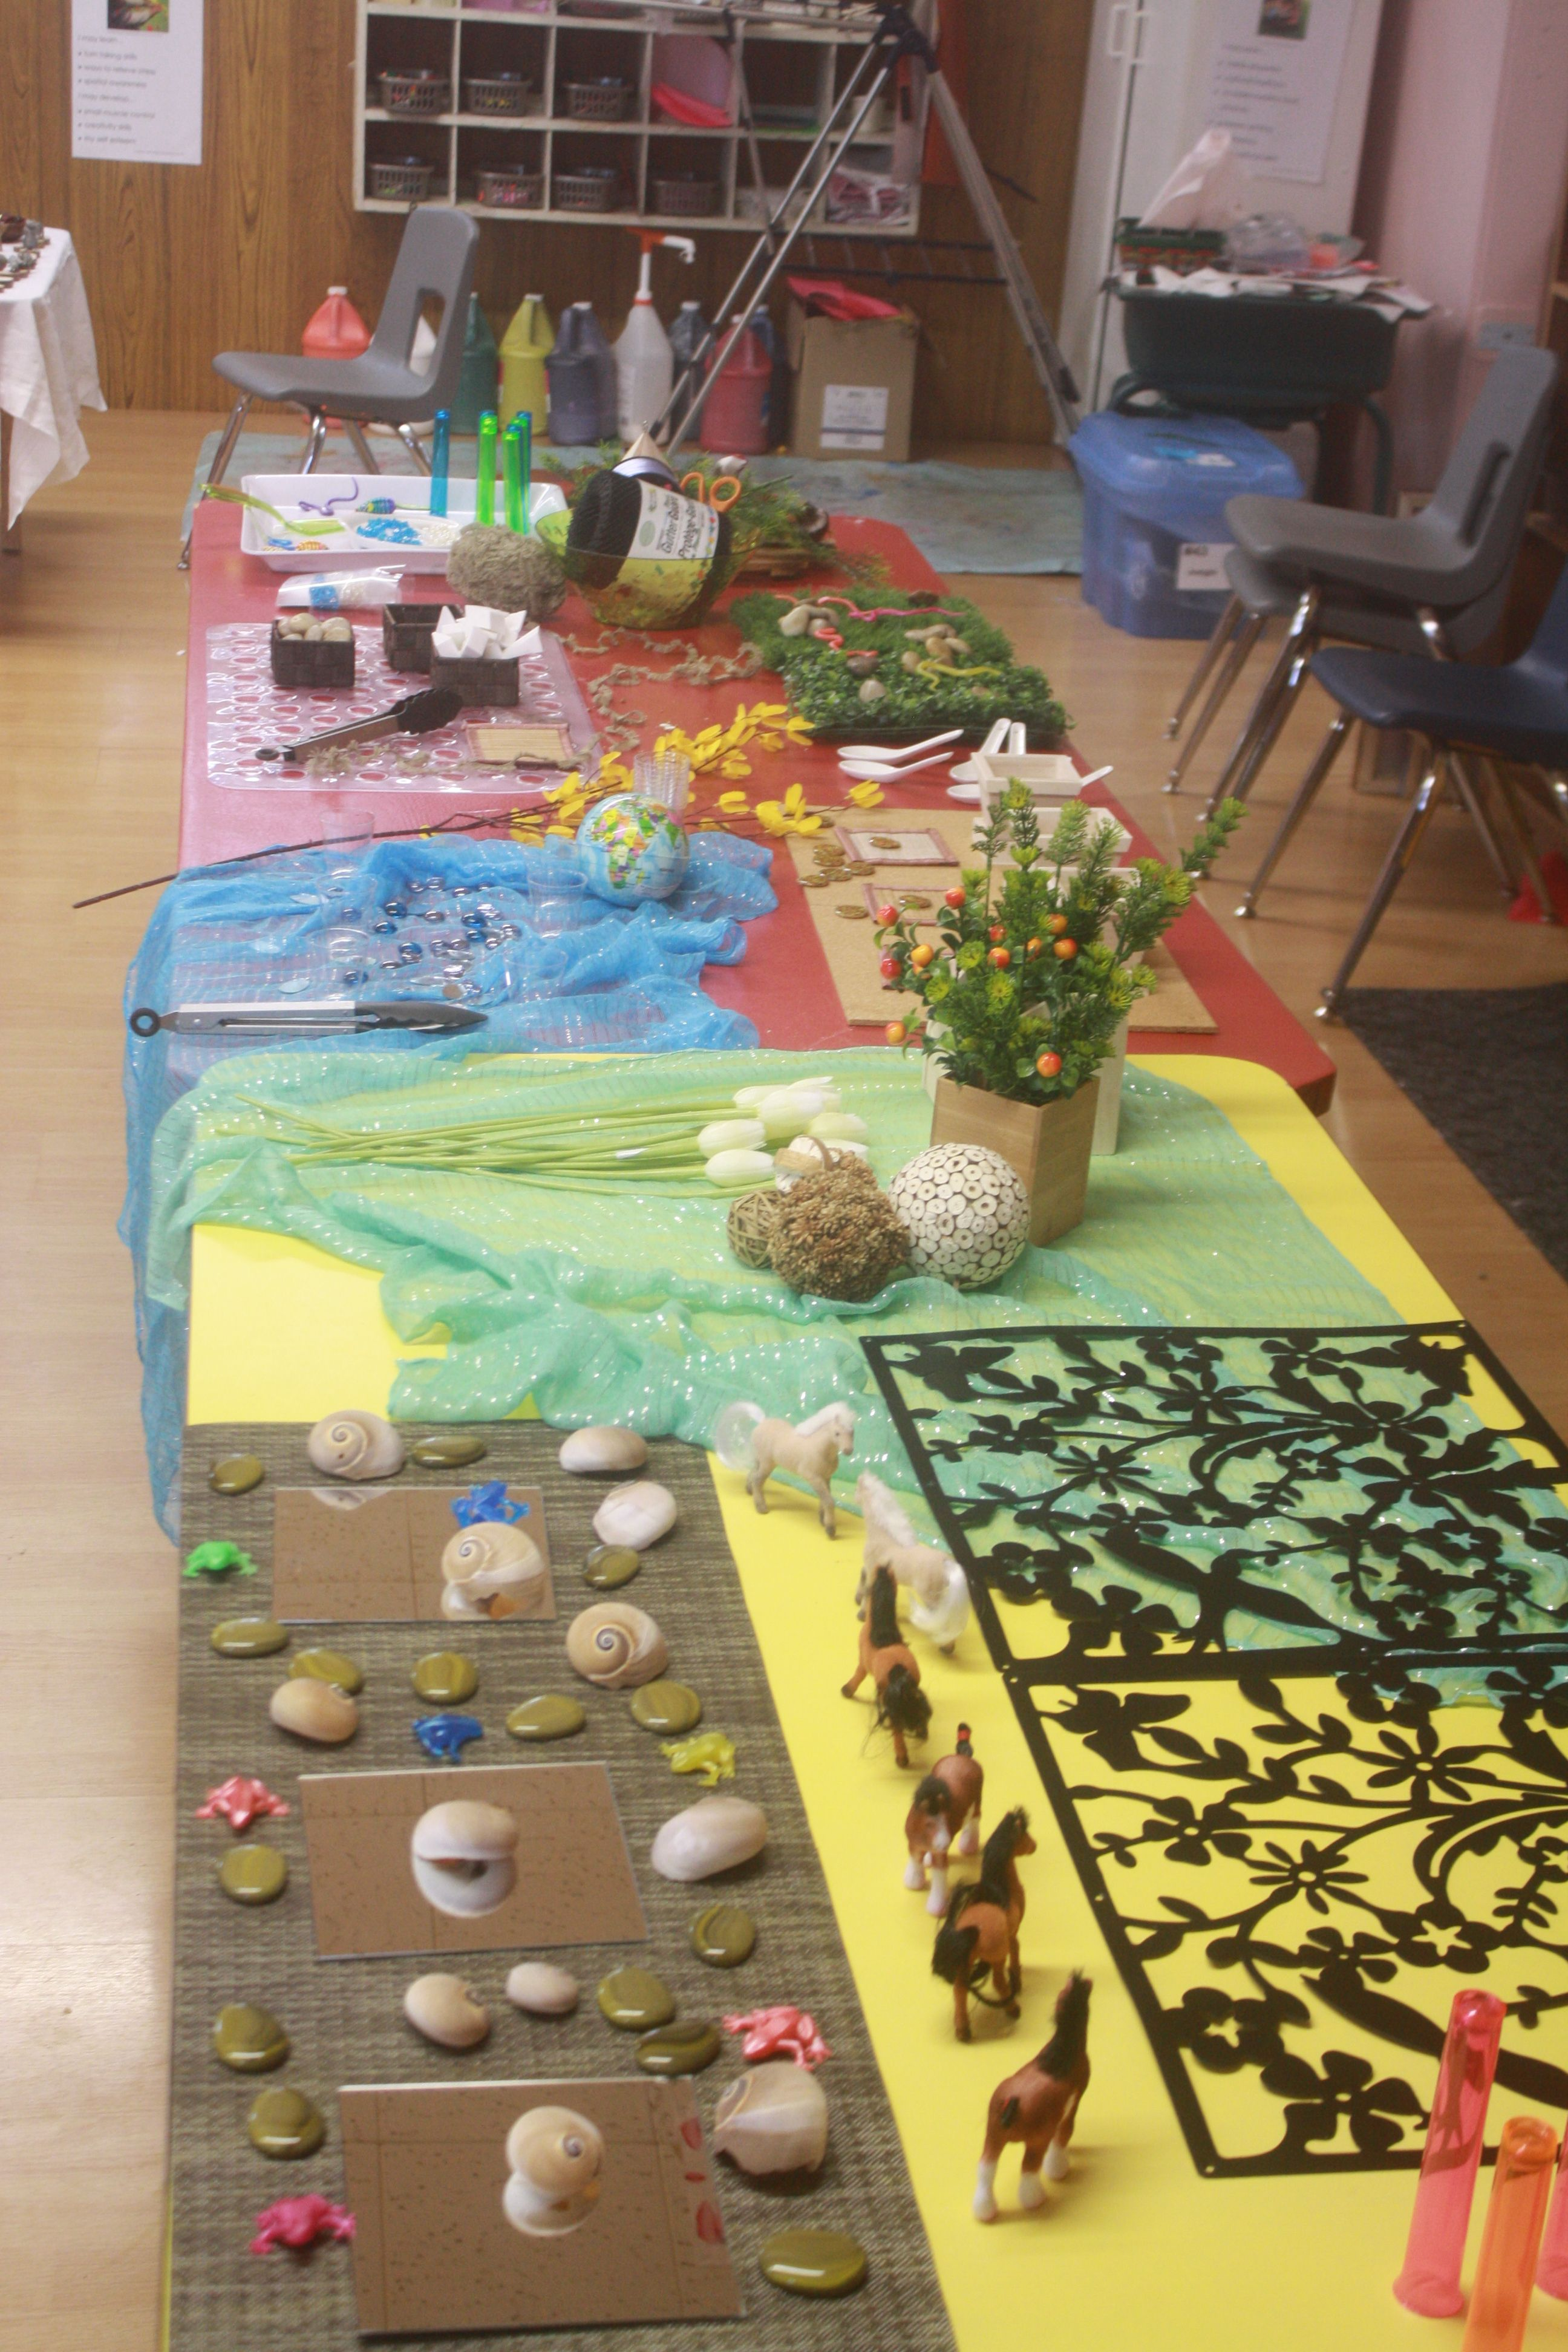 Practice setting up provocations with beautiful, open